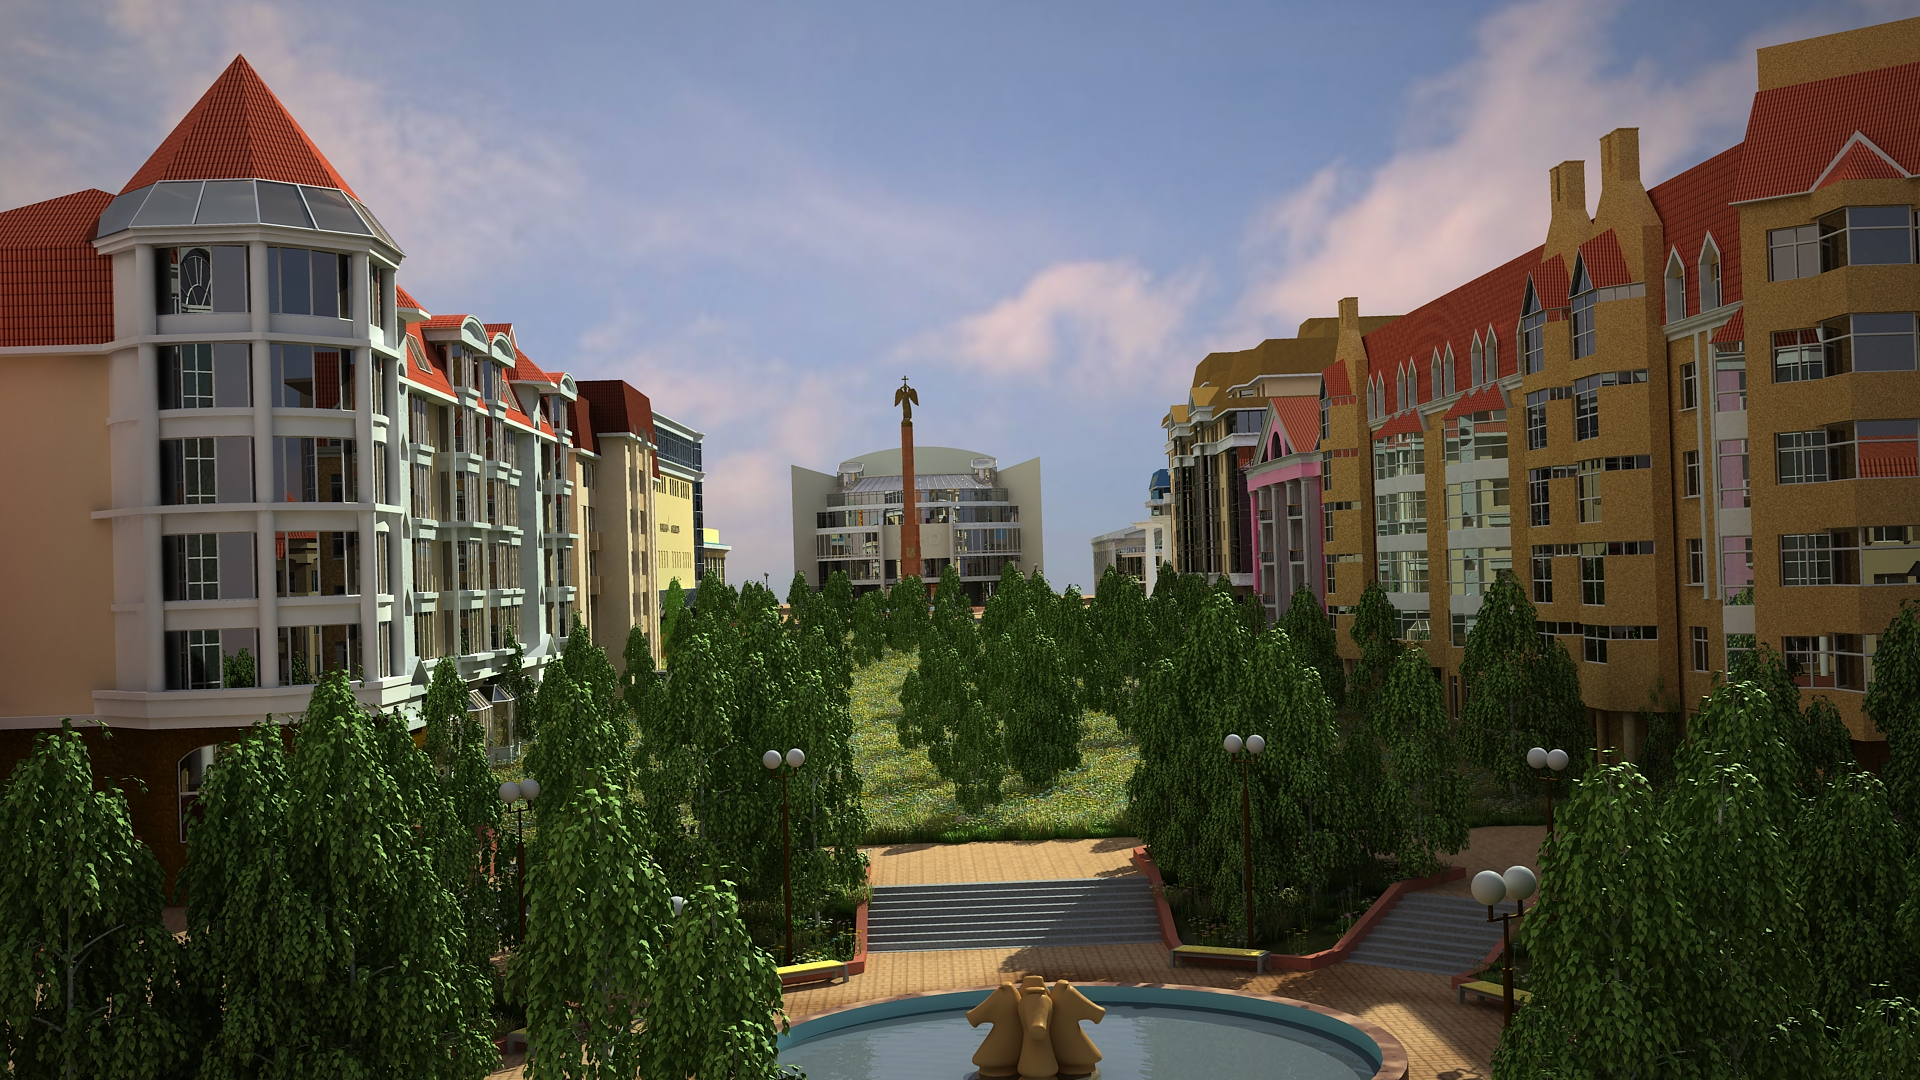 53 quarter reconstruction. in 3d max vray 2.0 image